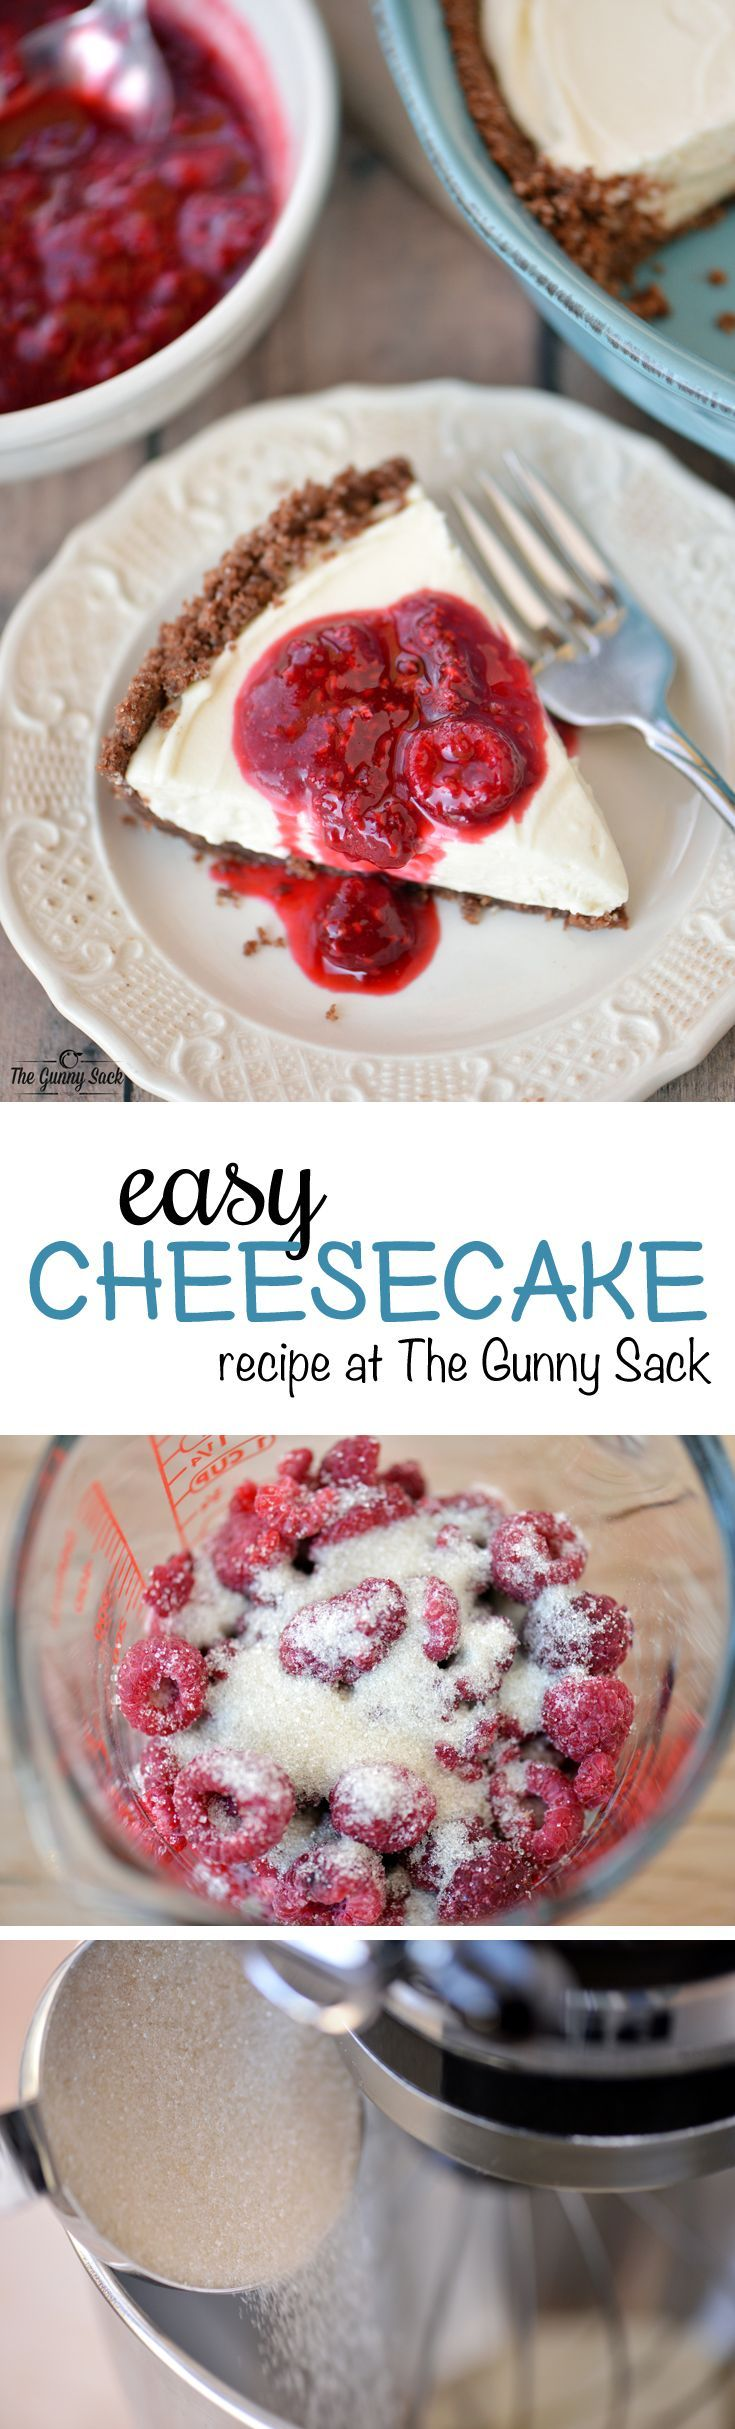 This easy cheesecake recipe with raspberry sauce is a favorite holiday recipe. It's a no bake cheesecake recipe with a chocolate graham cracker crust.   thegunnysack.com